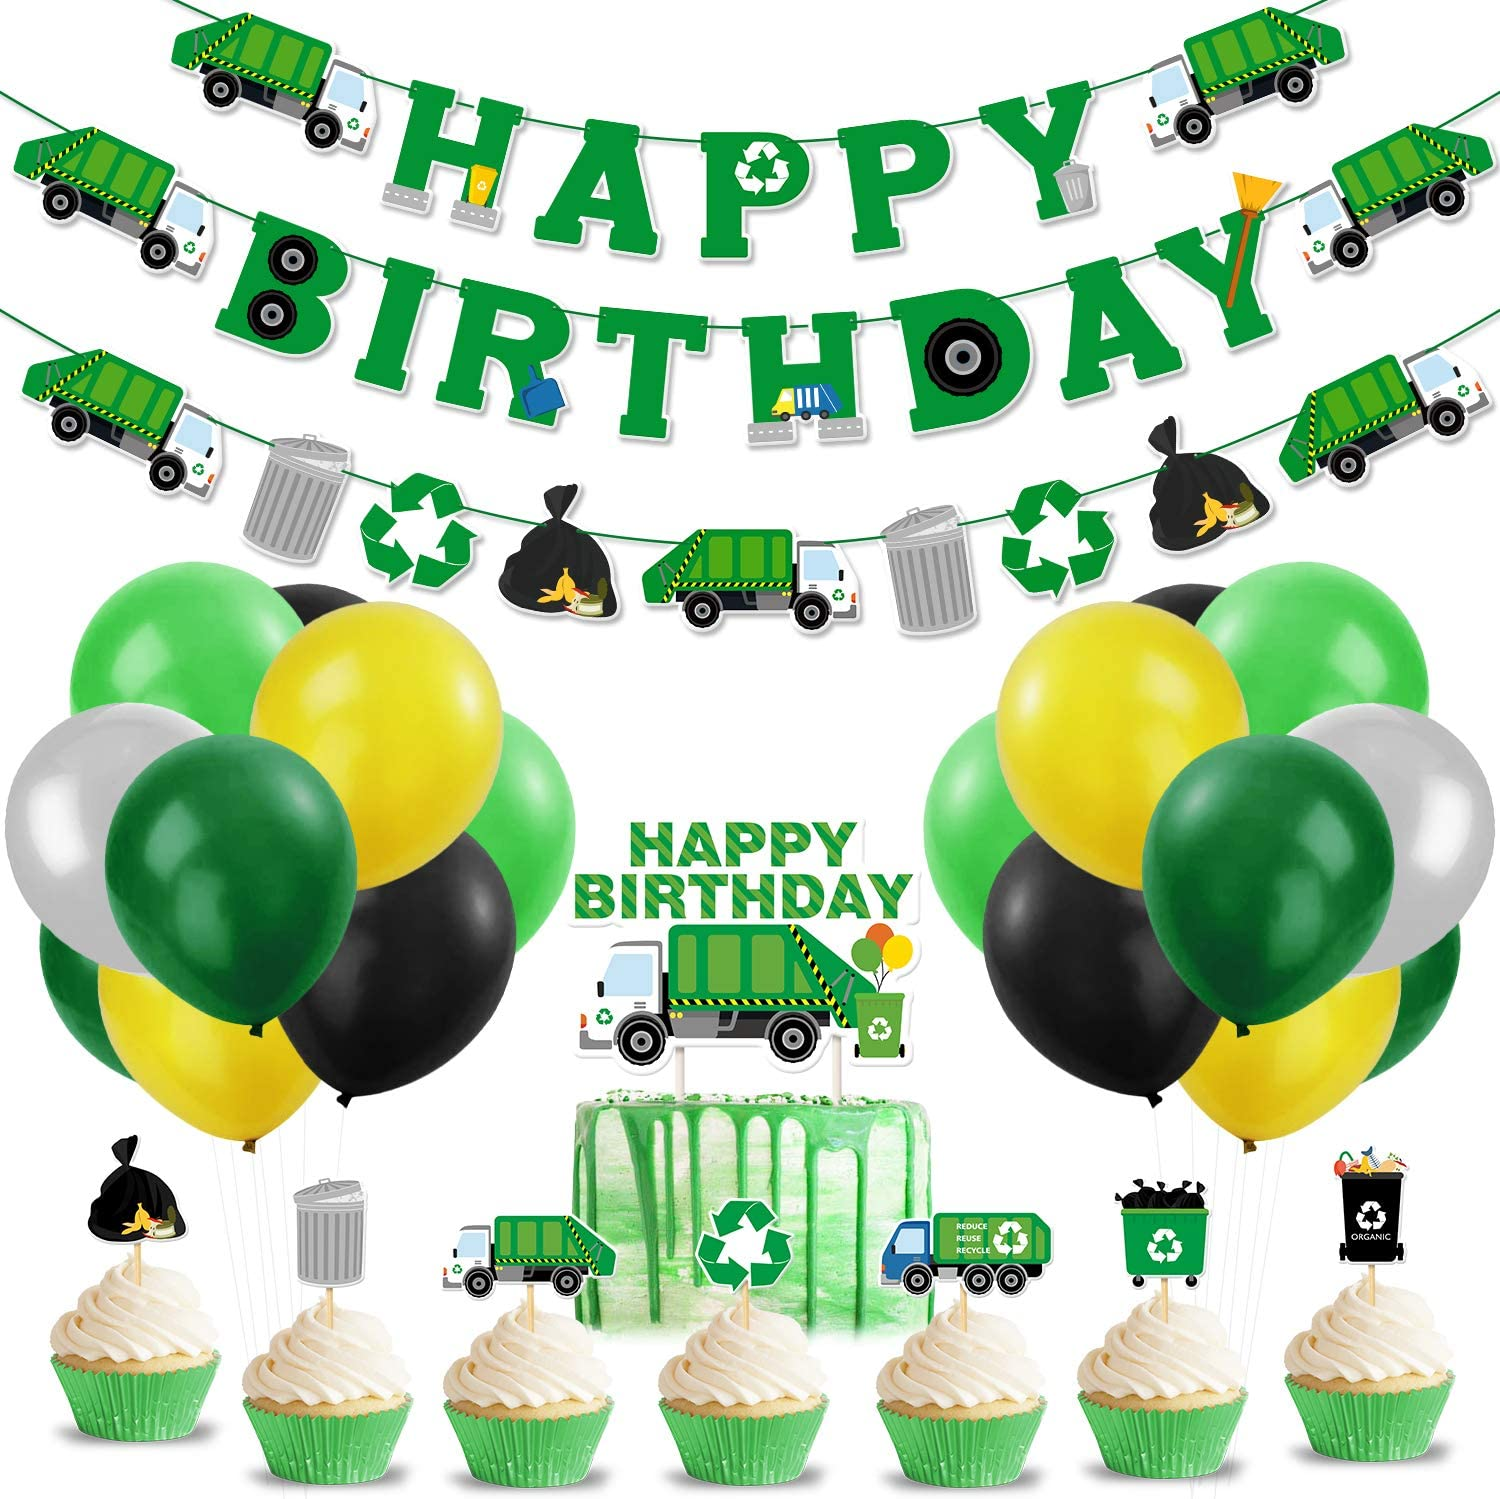 Garbage Truck Birthday Party Supplies Trash Truck Banner Garland Cake Topper Cupcake Toppers Latex Balloons for Boy's Birthday Waste Management Recycling Party Decor